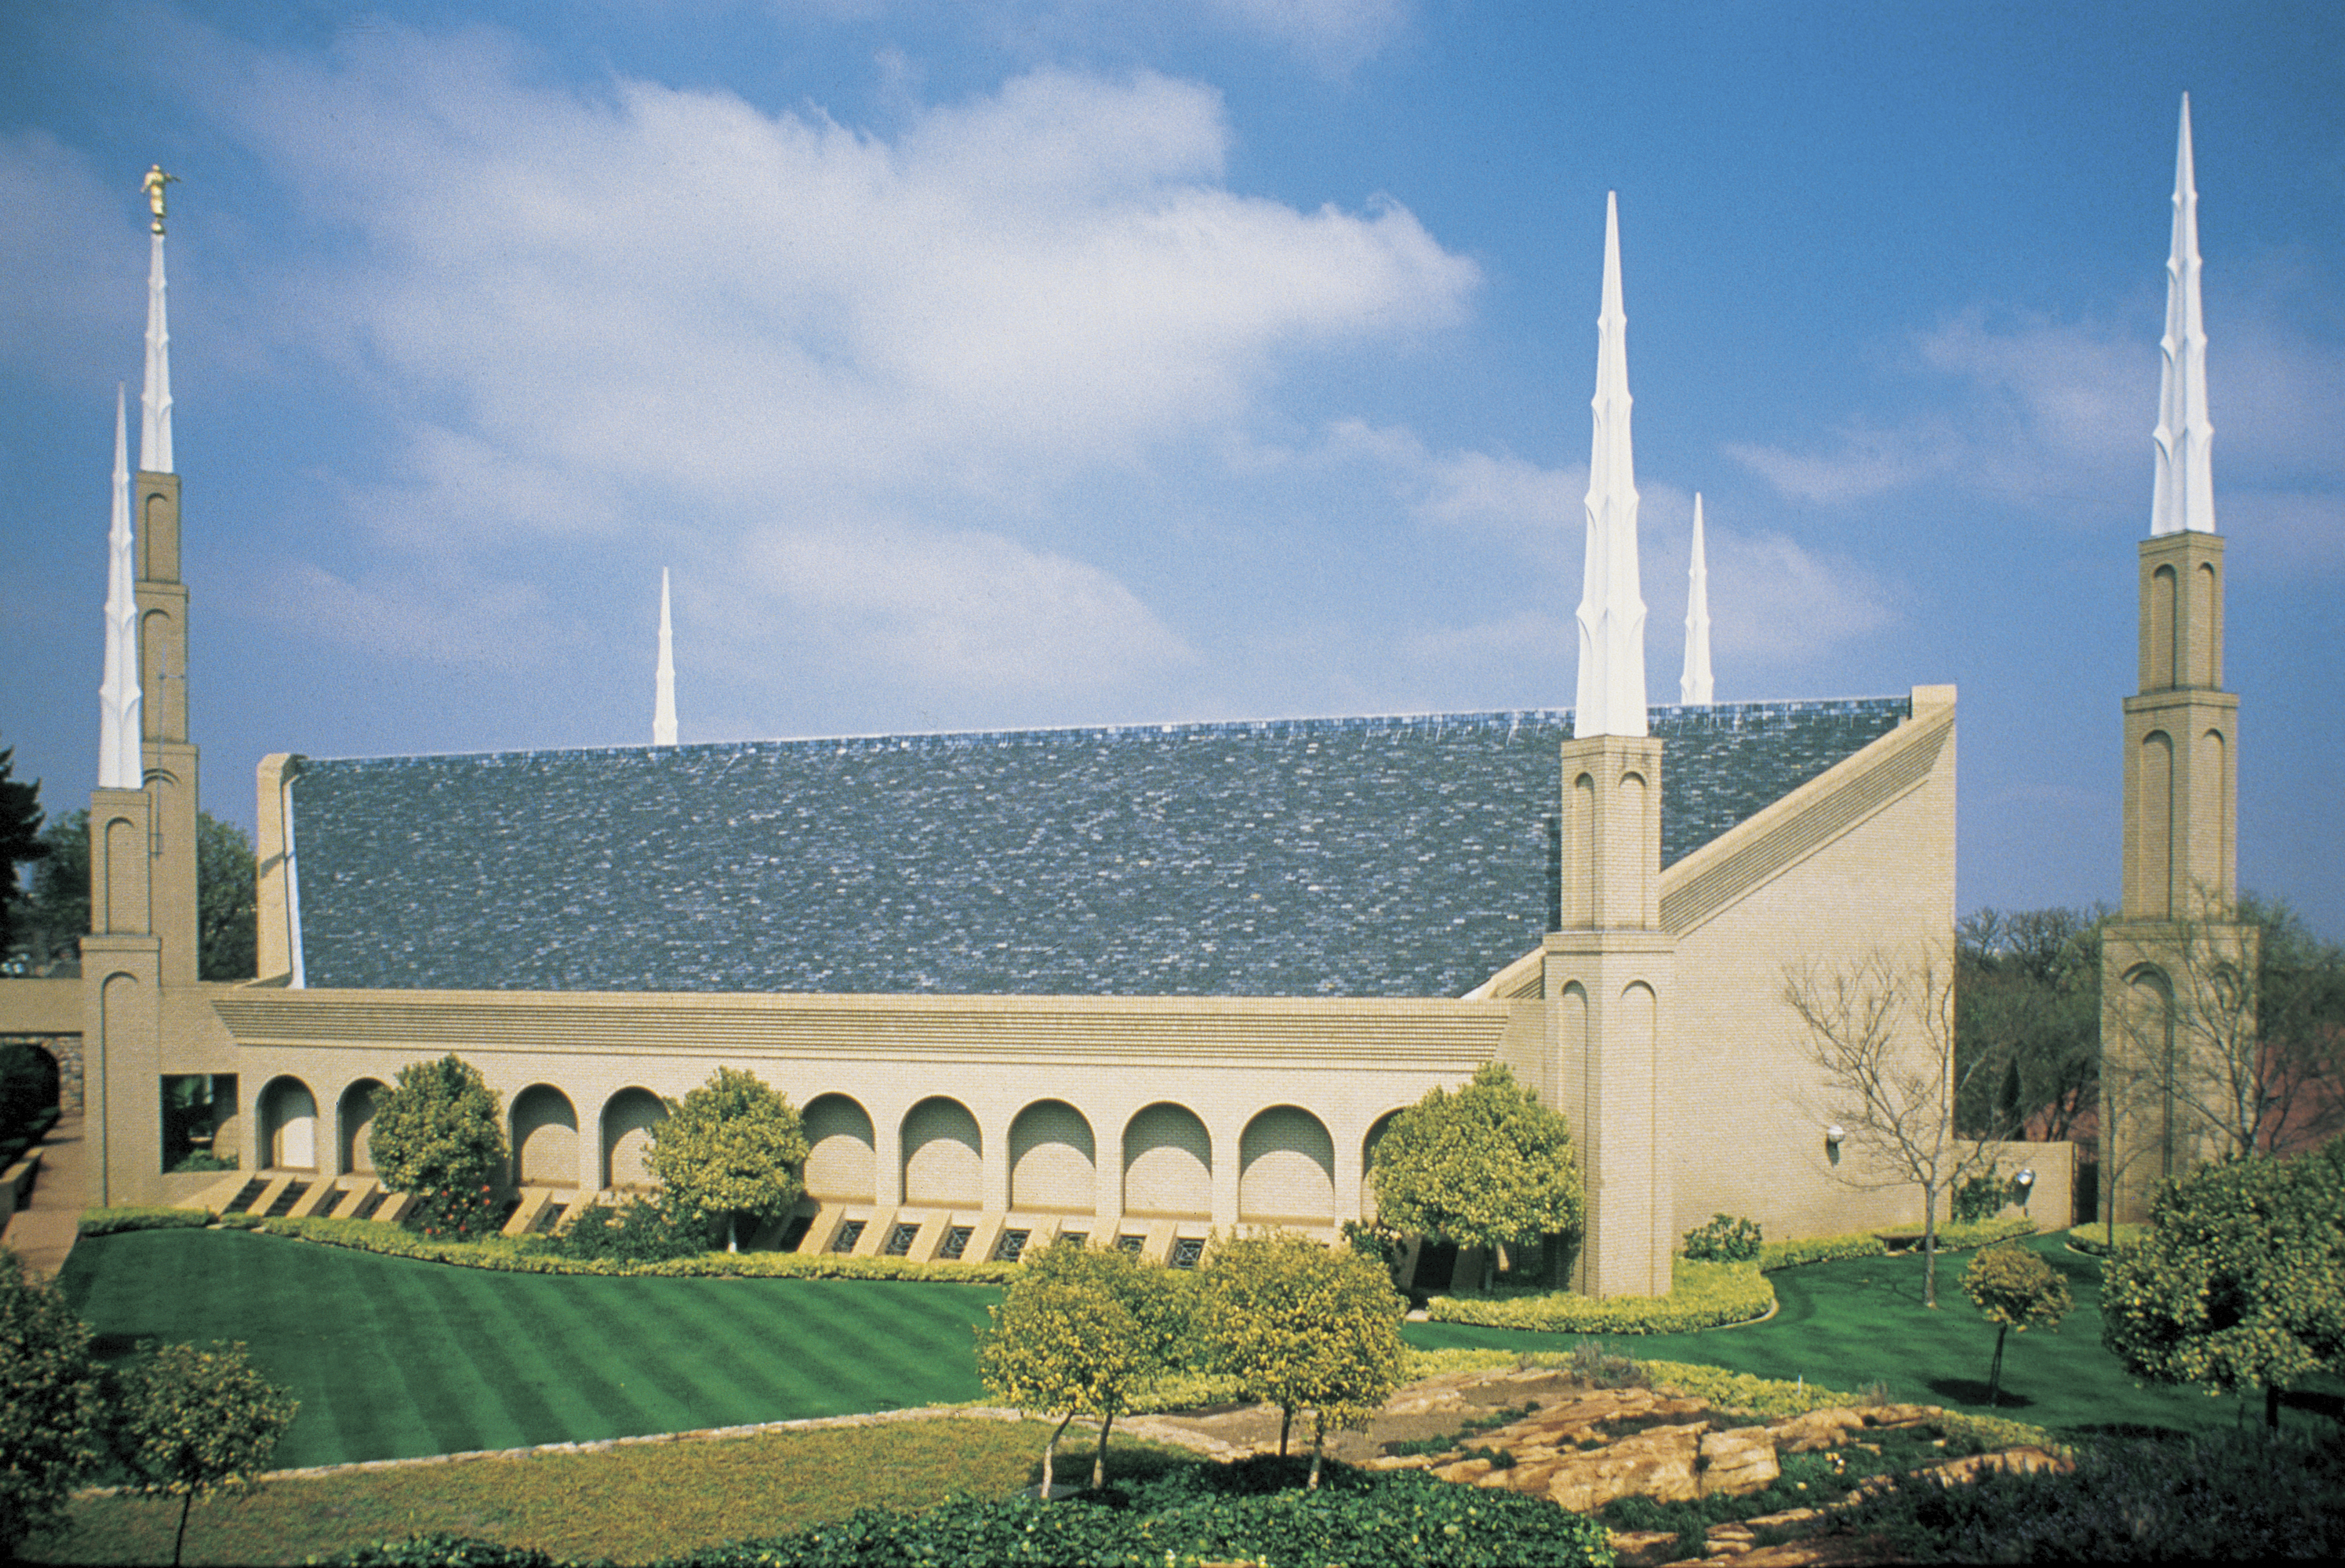 The Johannesburg South Africa Temple view, including scenery.